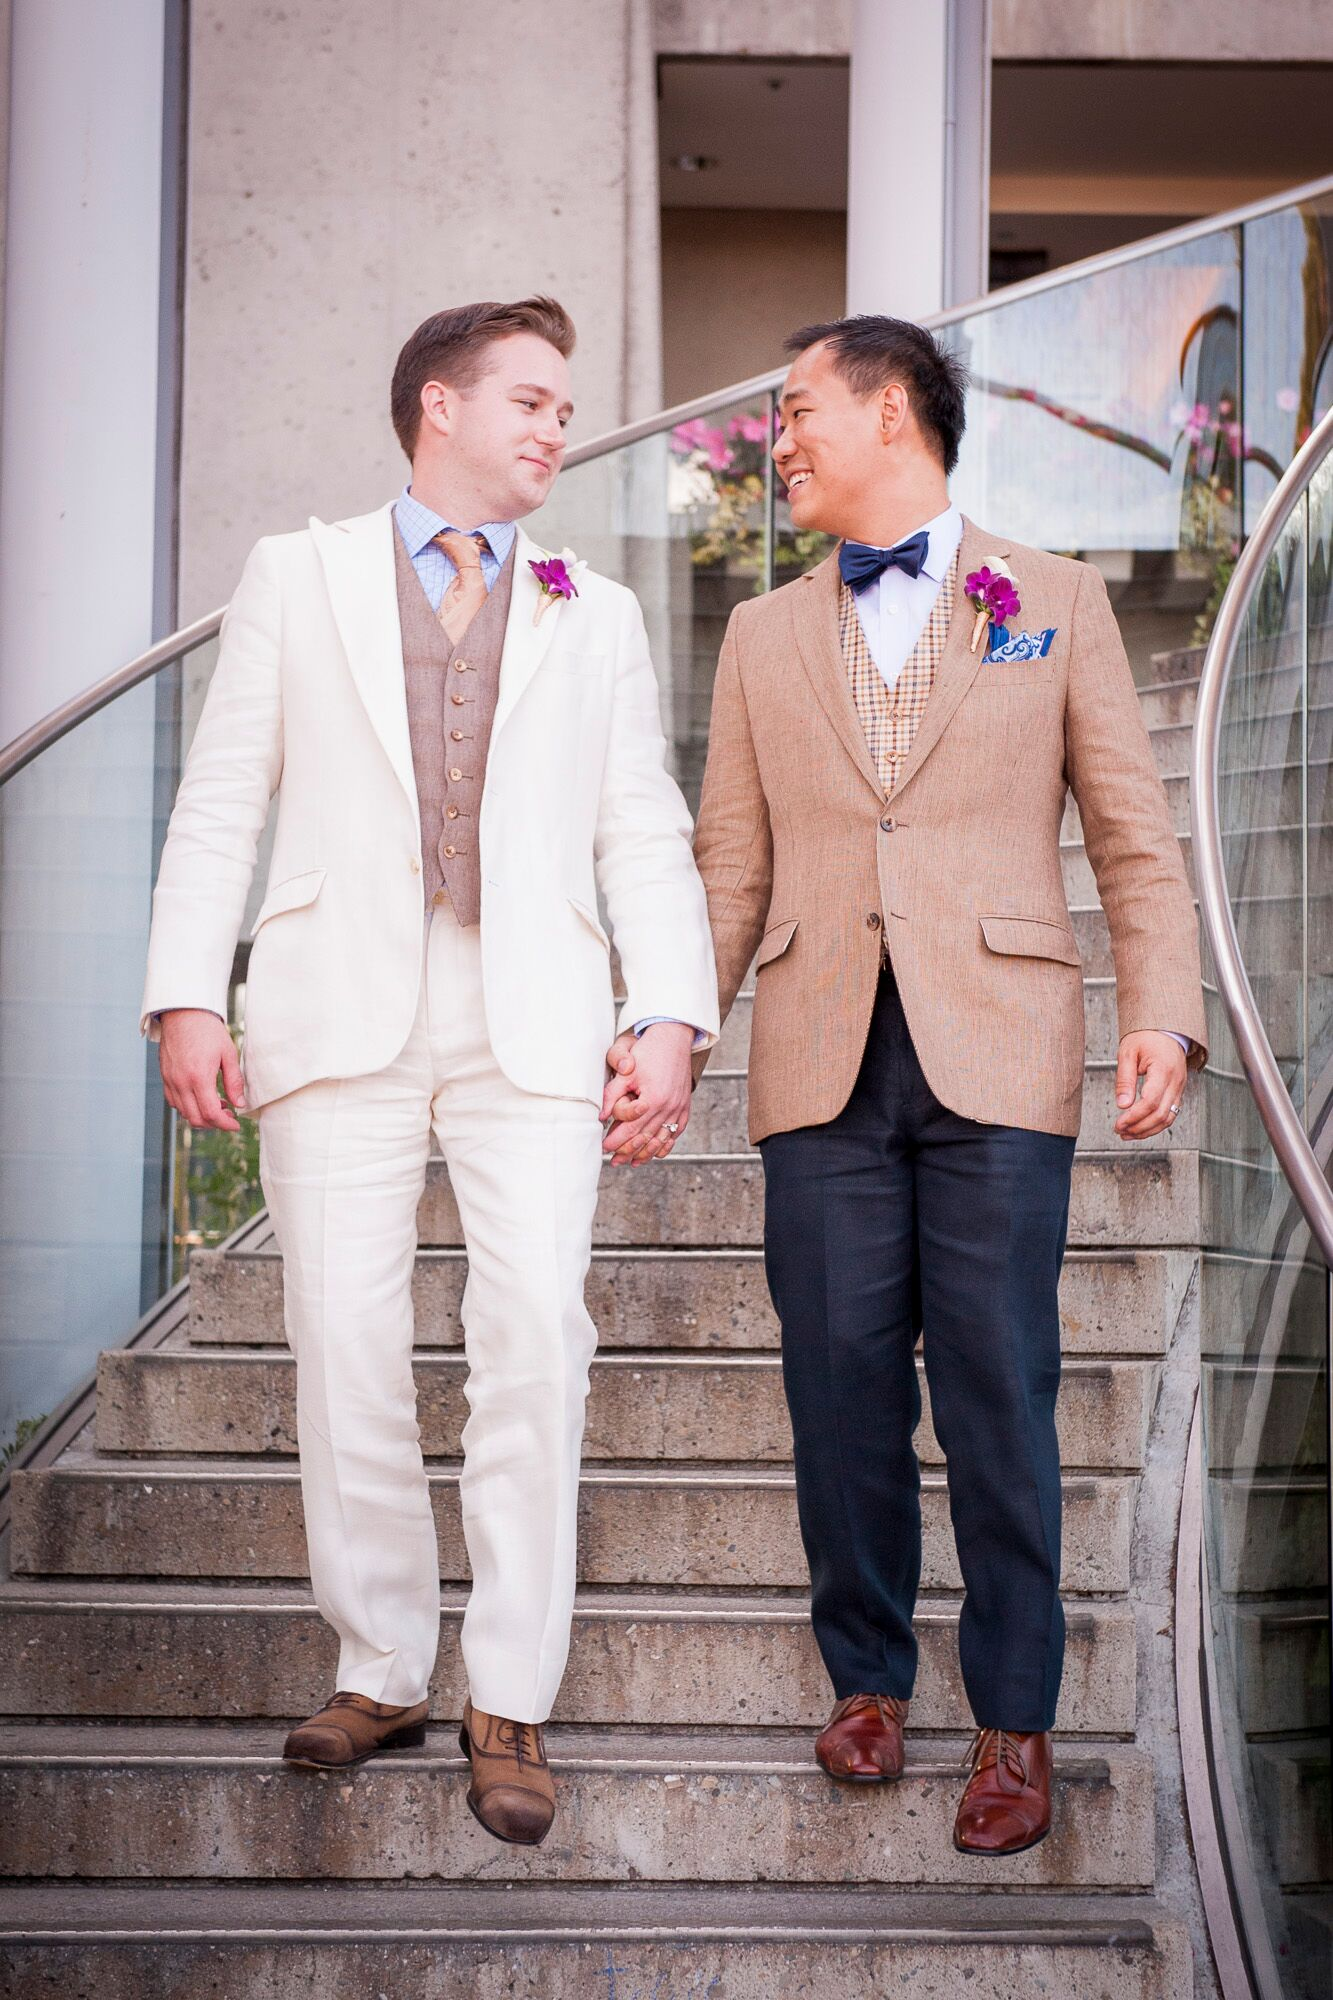 The Great Gatsby Inspired Suits